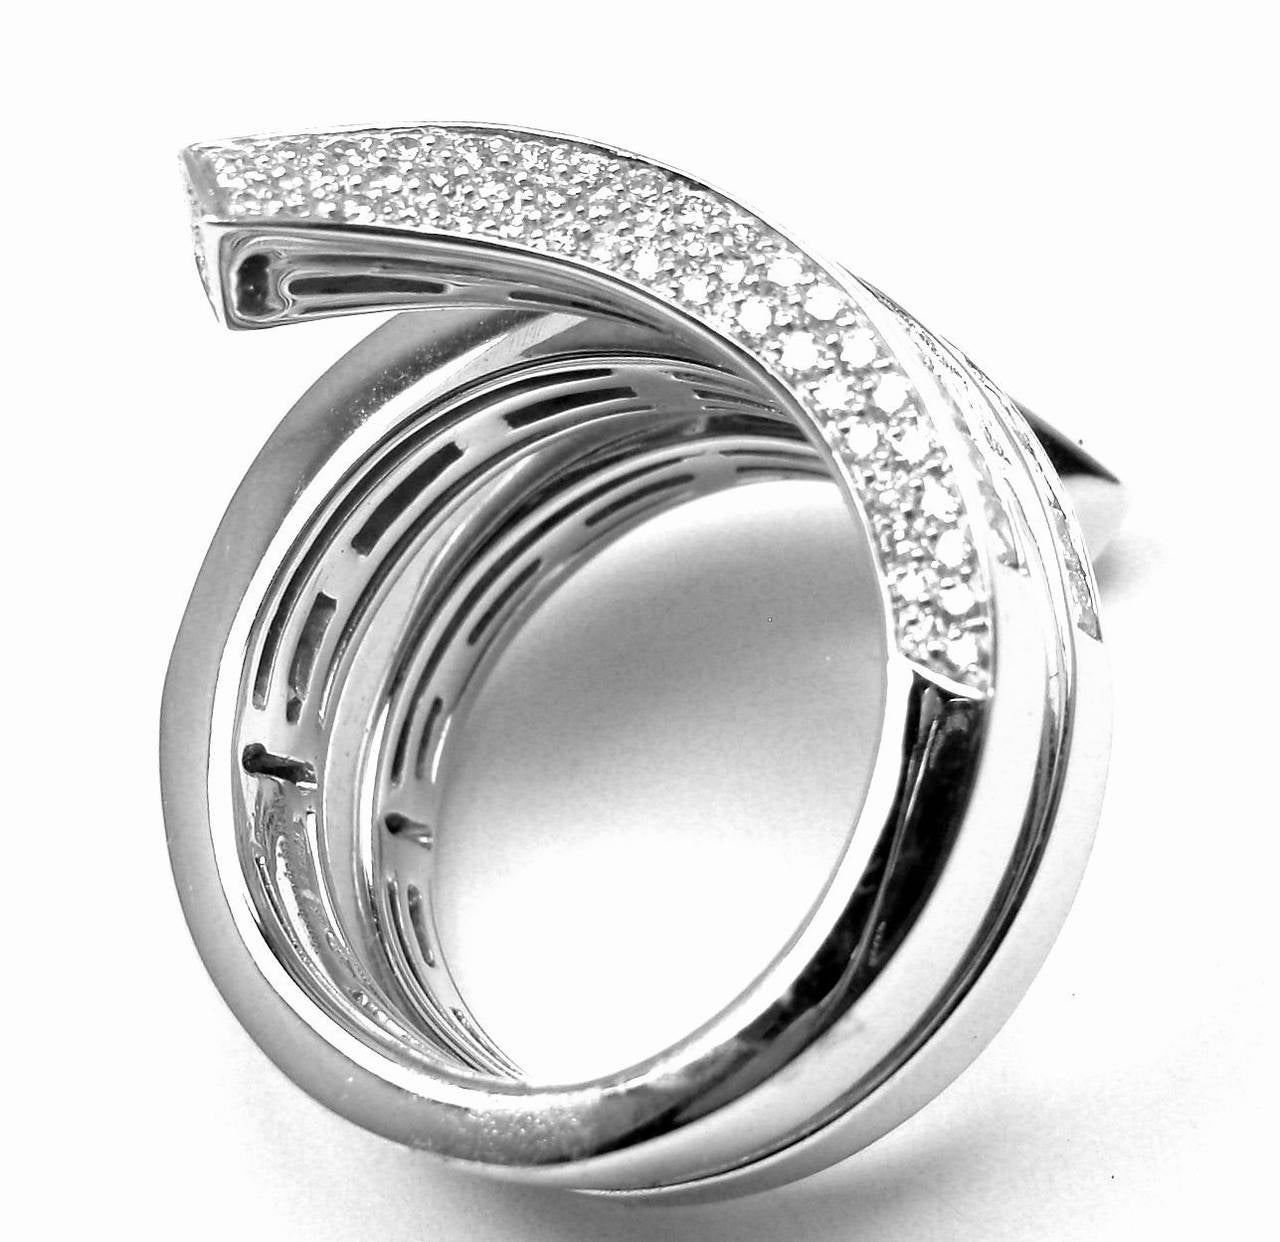 ring etsy ringscollection details circle rings silver com ori large buy now from gold